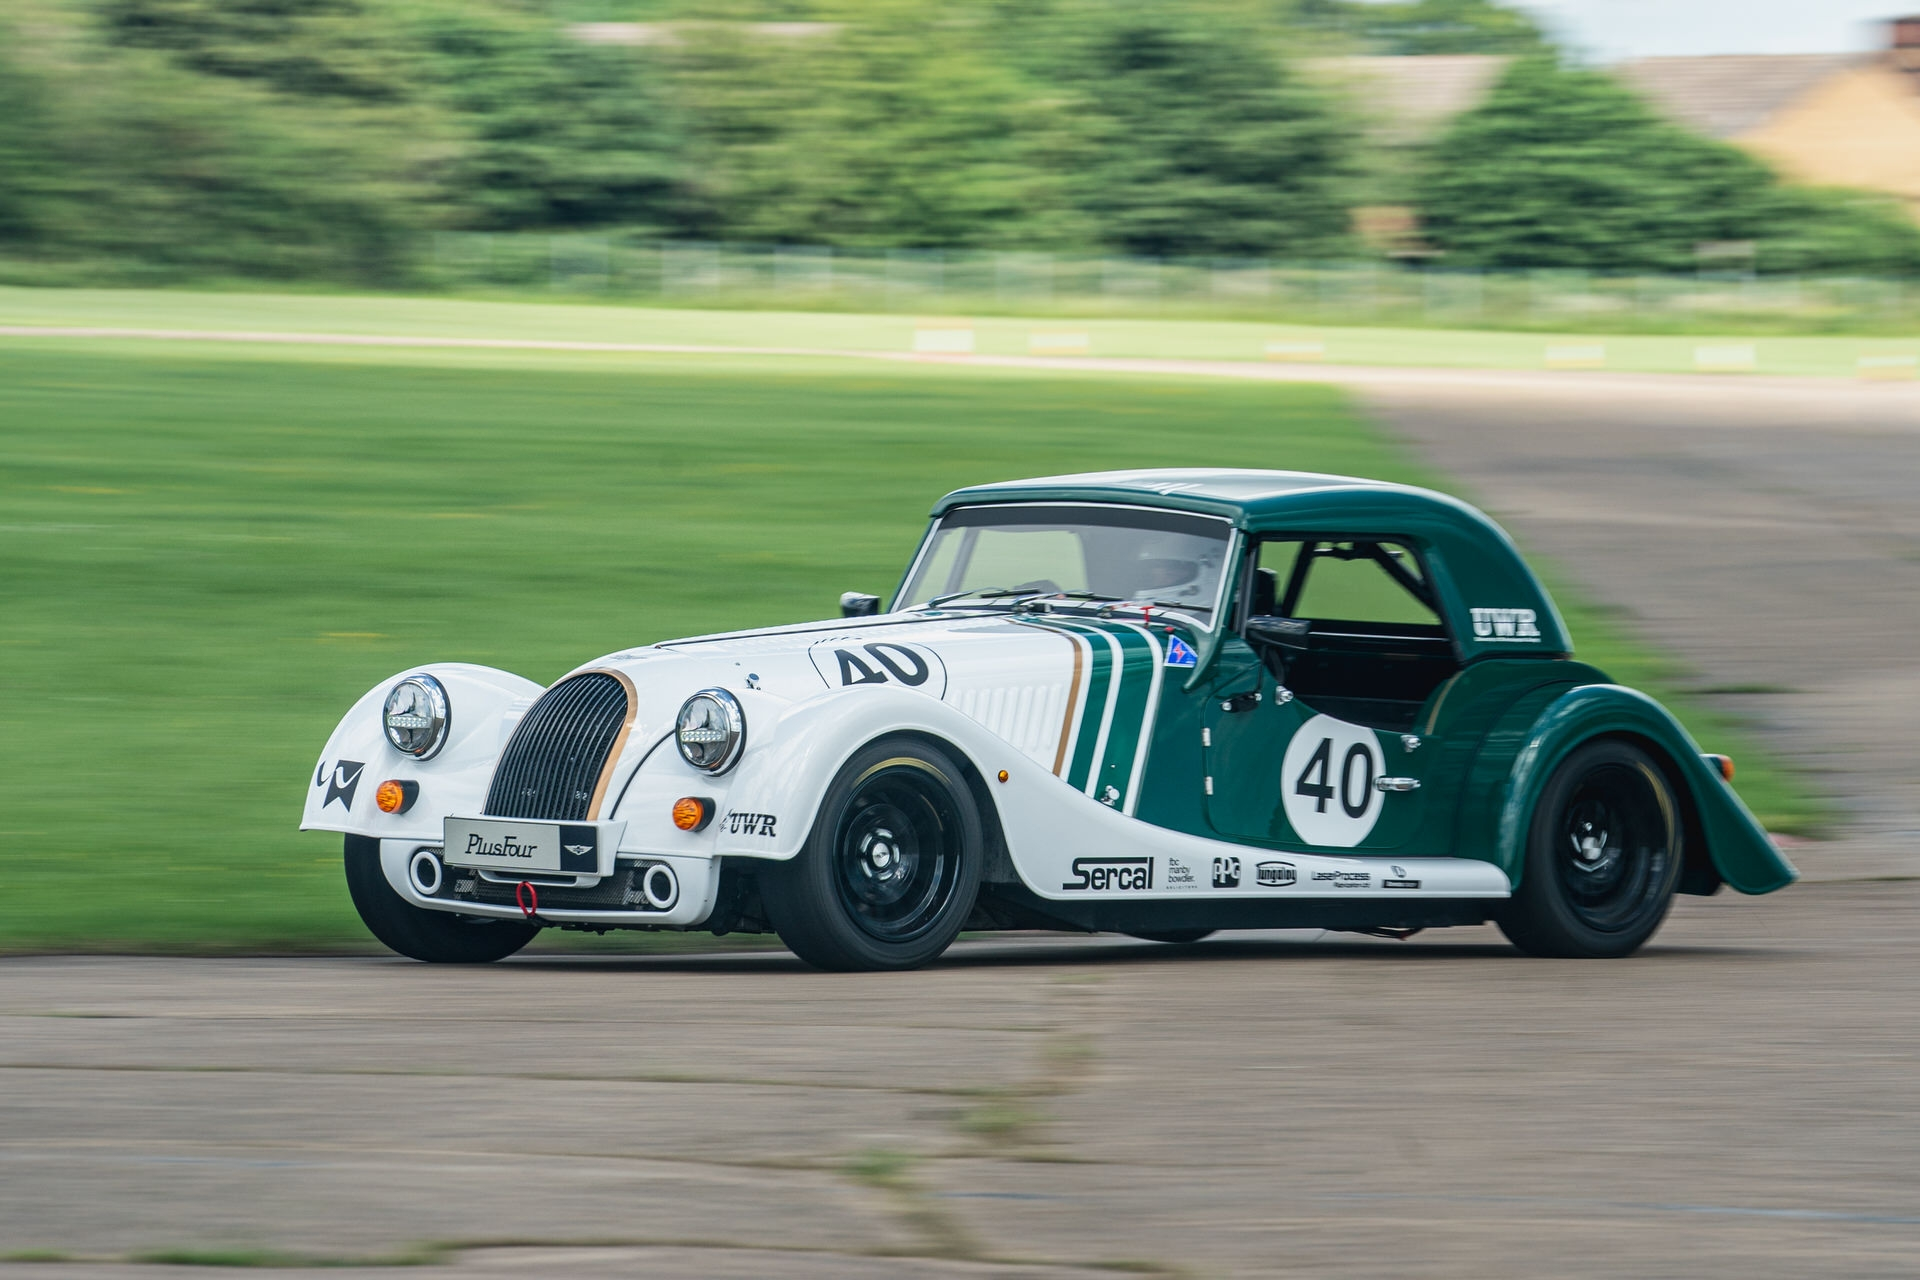 Morgan Plus Four racer readies for the track